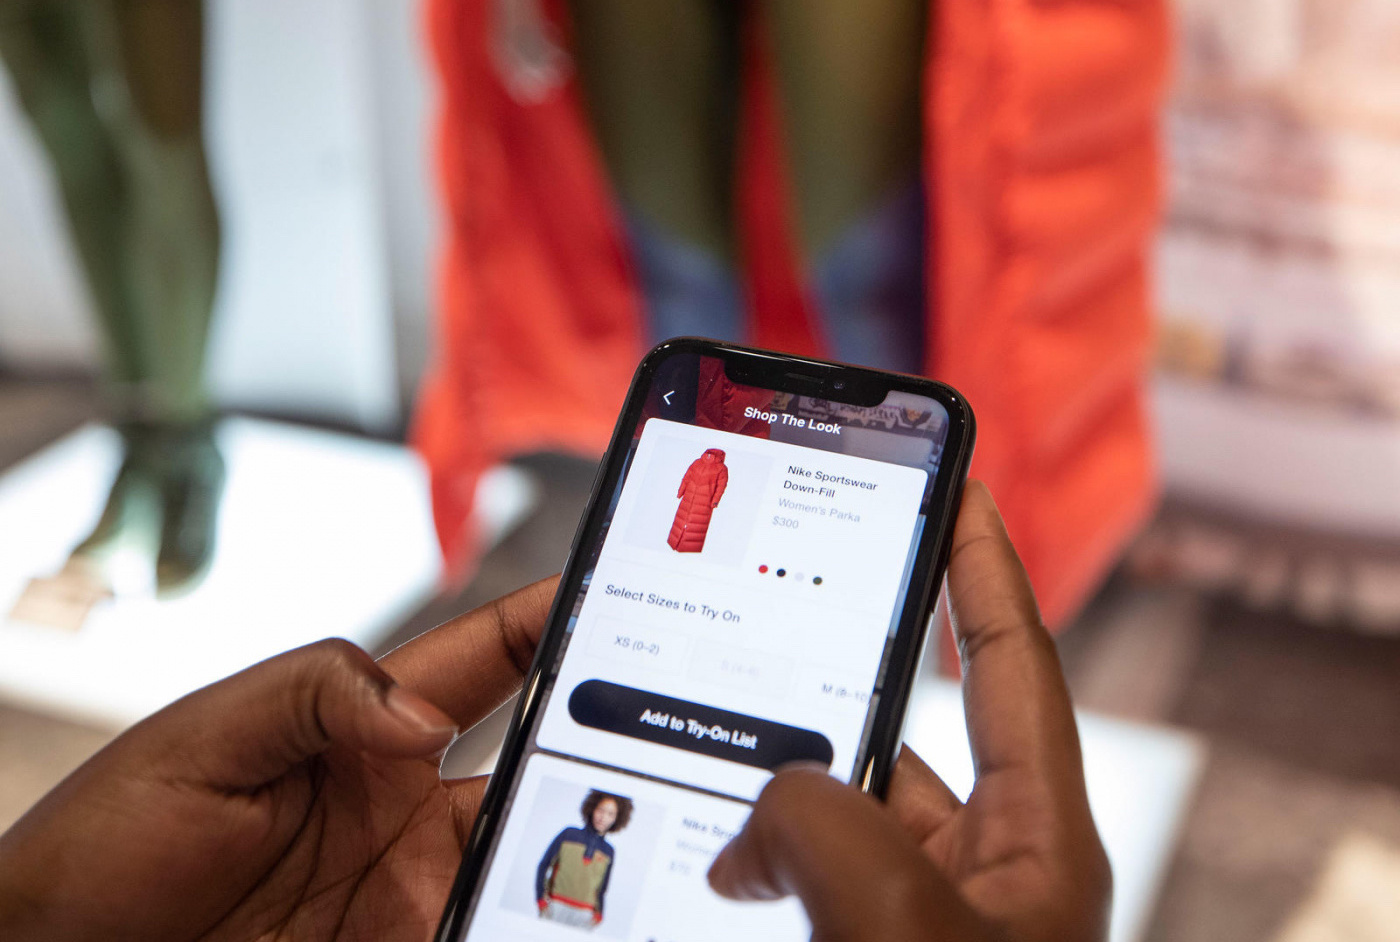 Op-Ed: Empowering The Consumer By Letting Store Shoppers Choose Their Own Journey